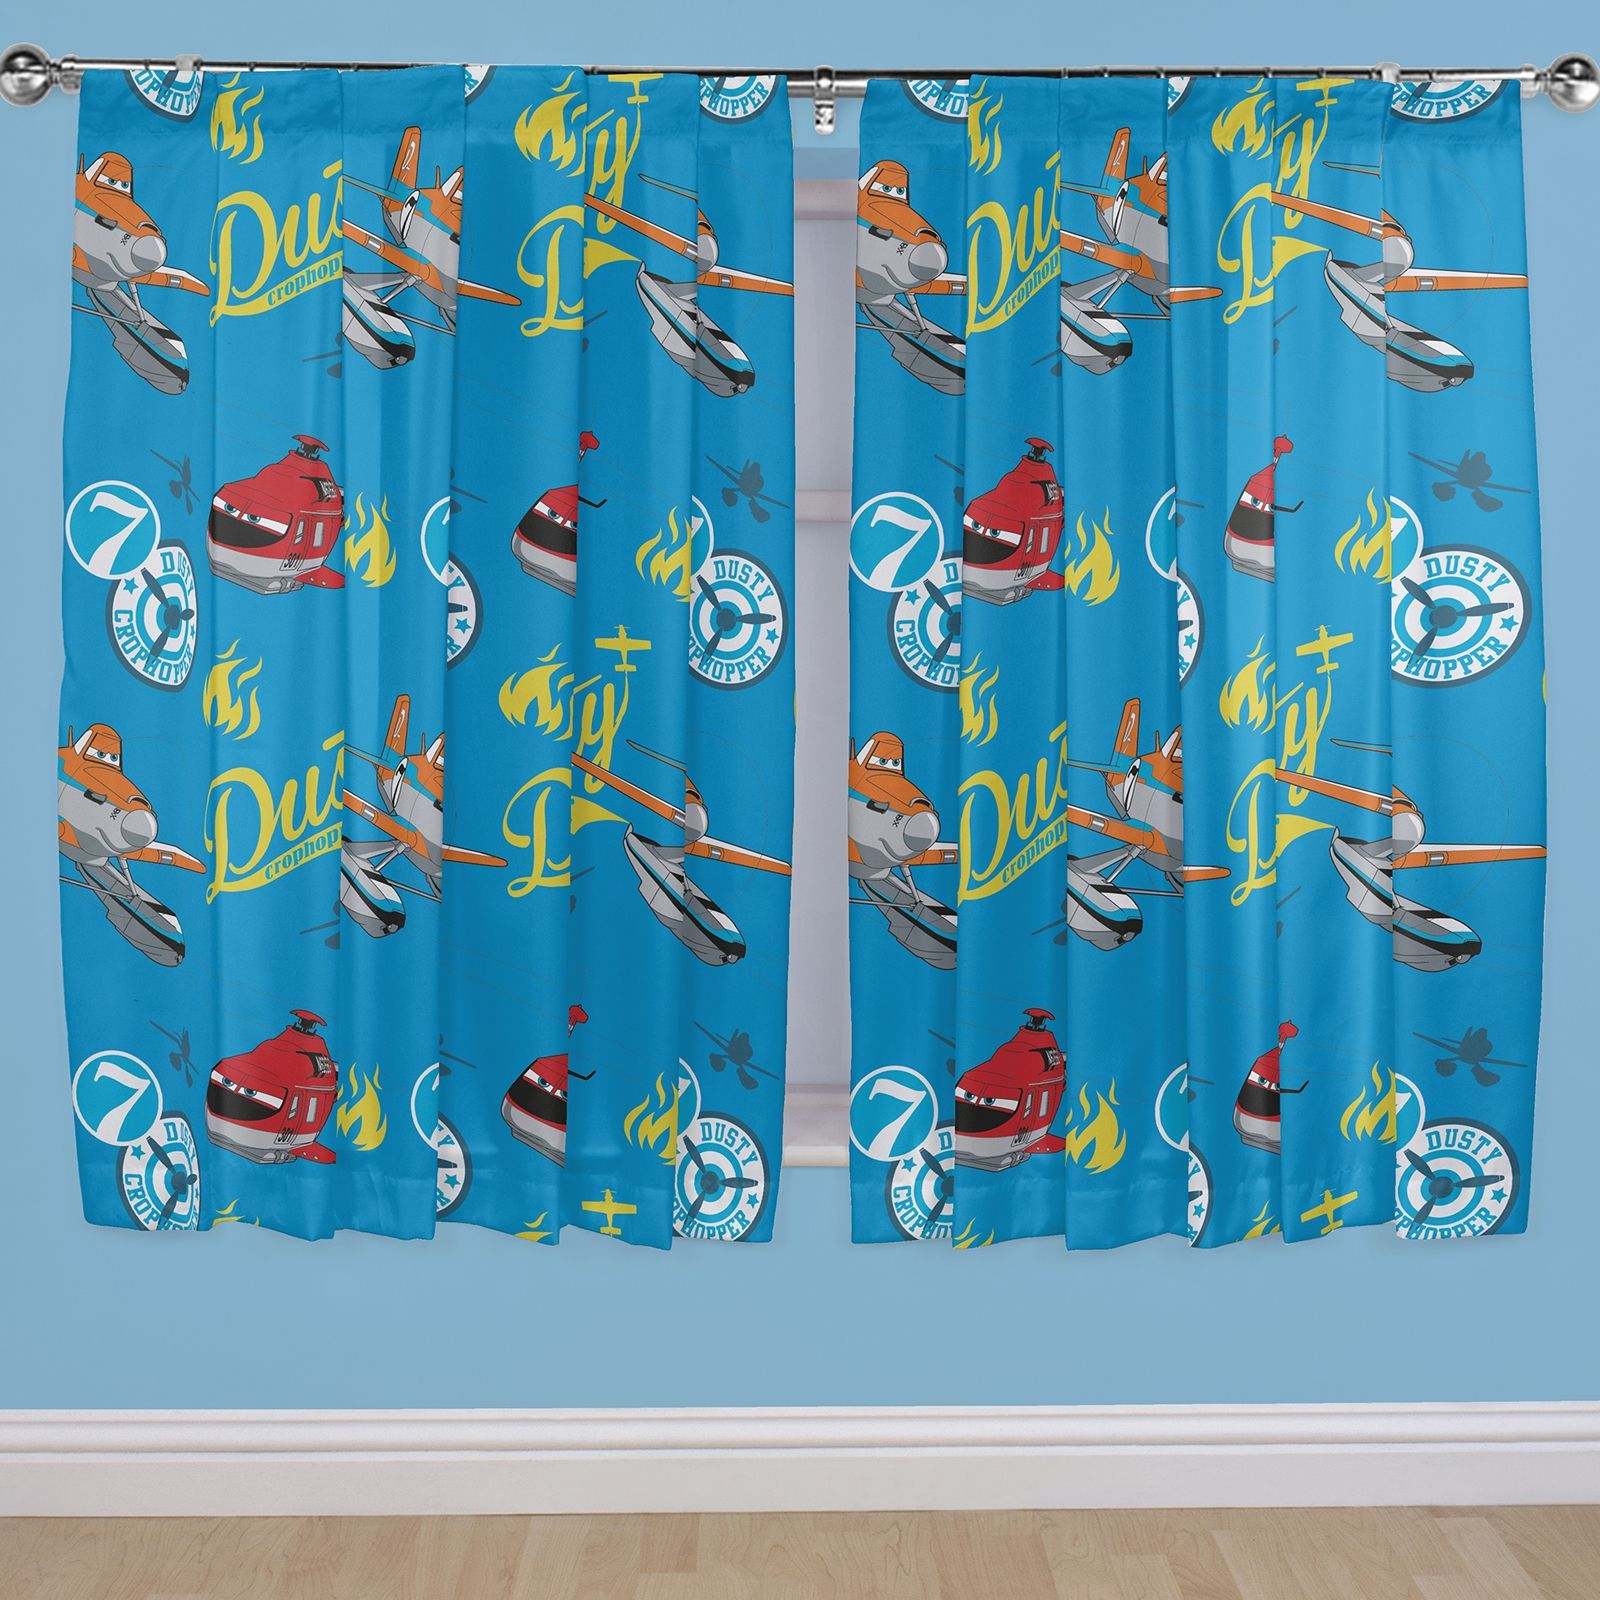 Details about KIDS DISNEY AND CHARACTER CURTAINS 54 + 72 INCH DROP ...